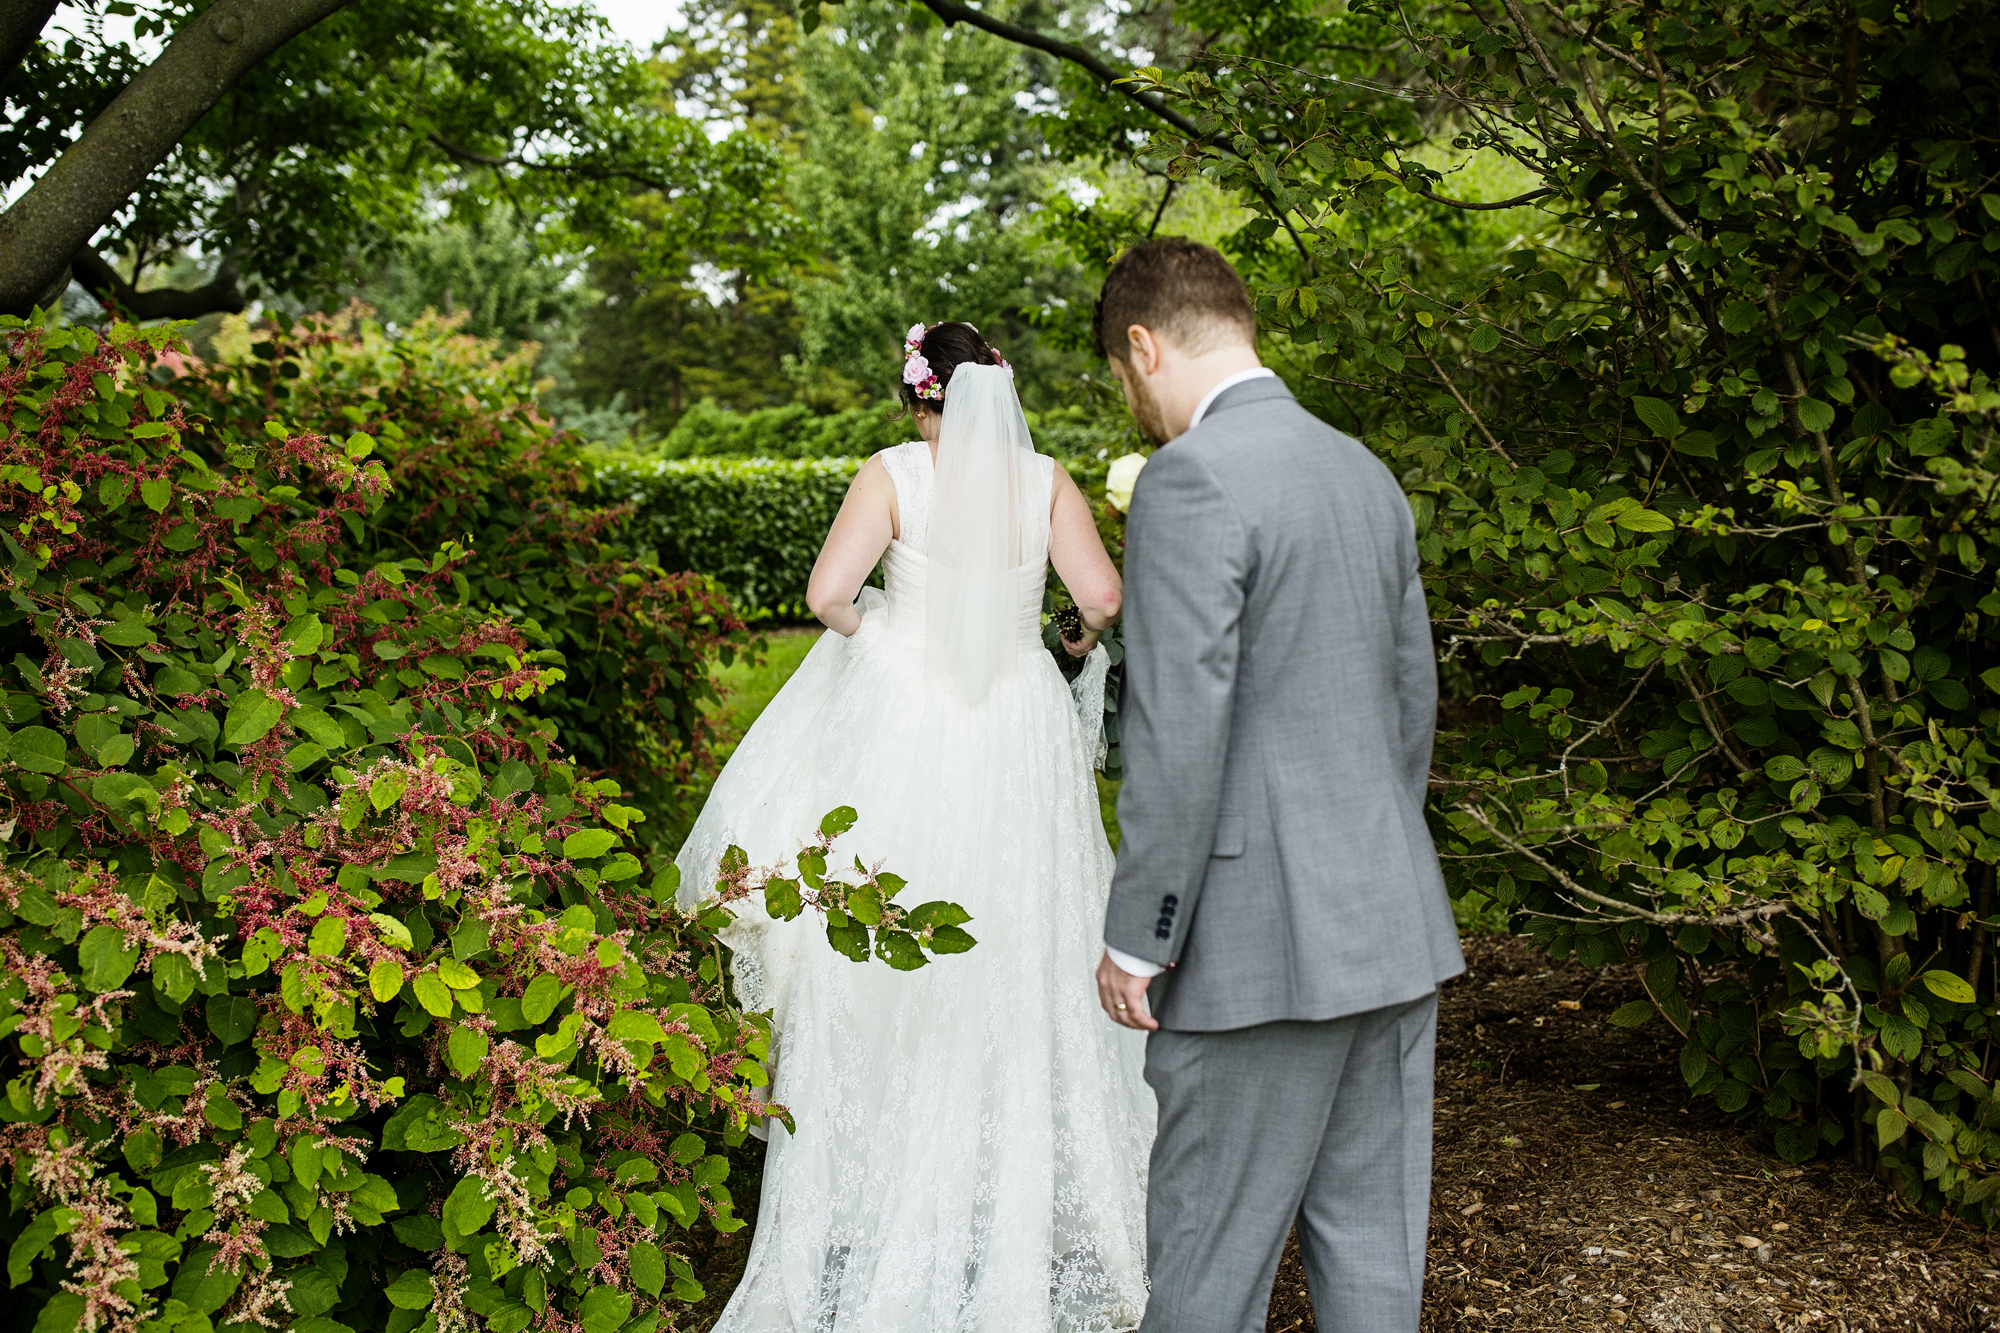 Seriously_Sabrina_Photography_Lisle_Illinois_Morton_Arboretum_Wedding_Day_Gowen91.jpg